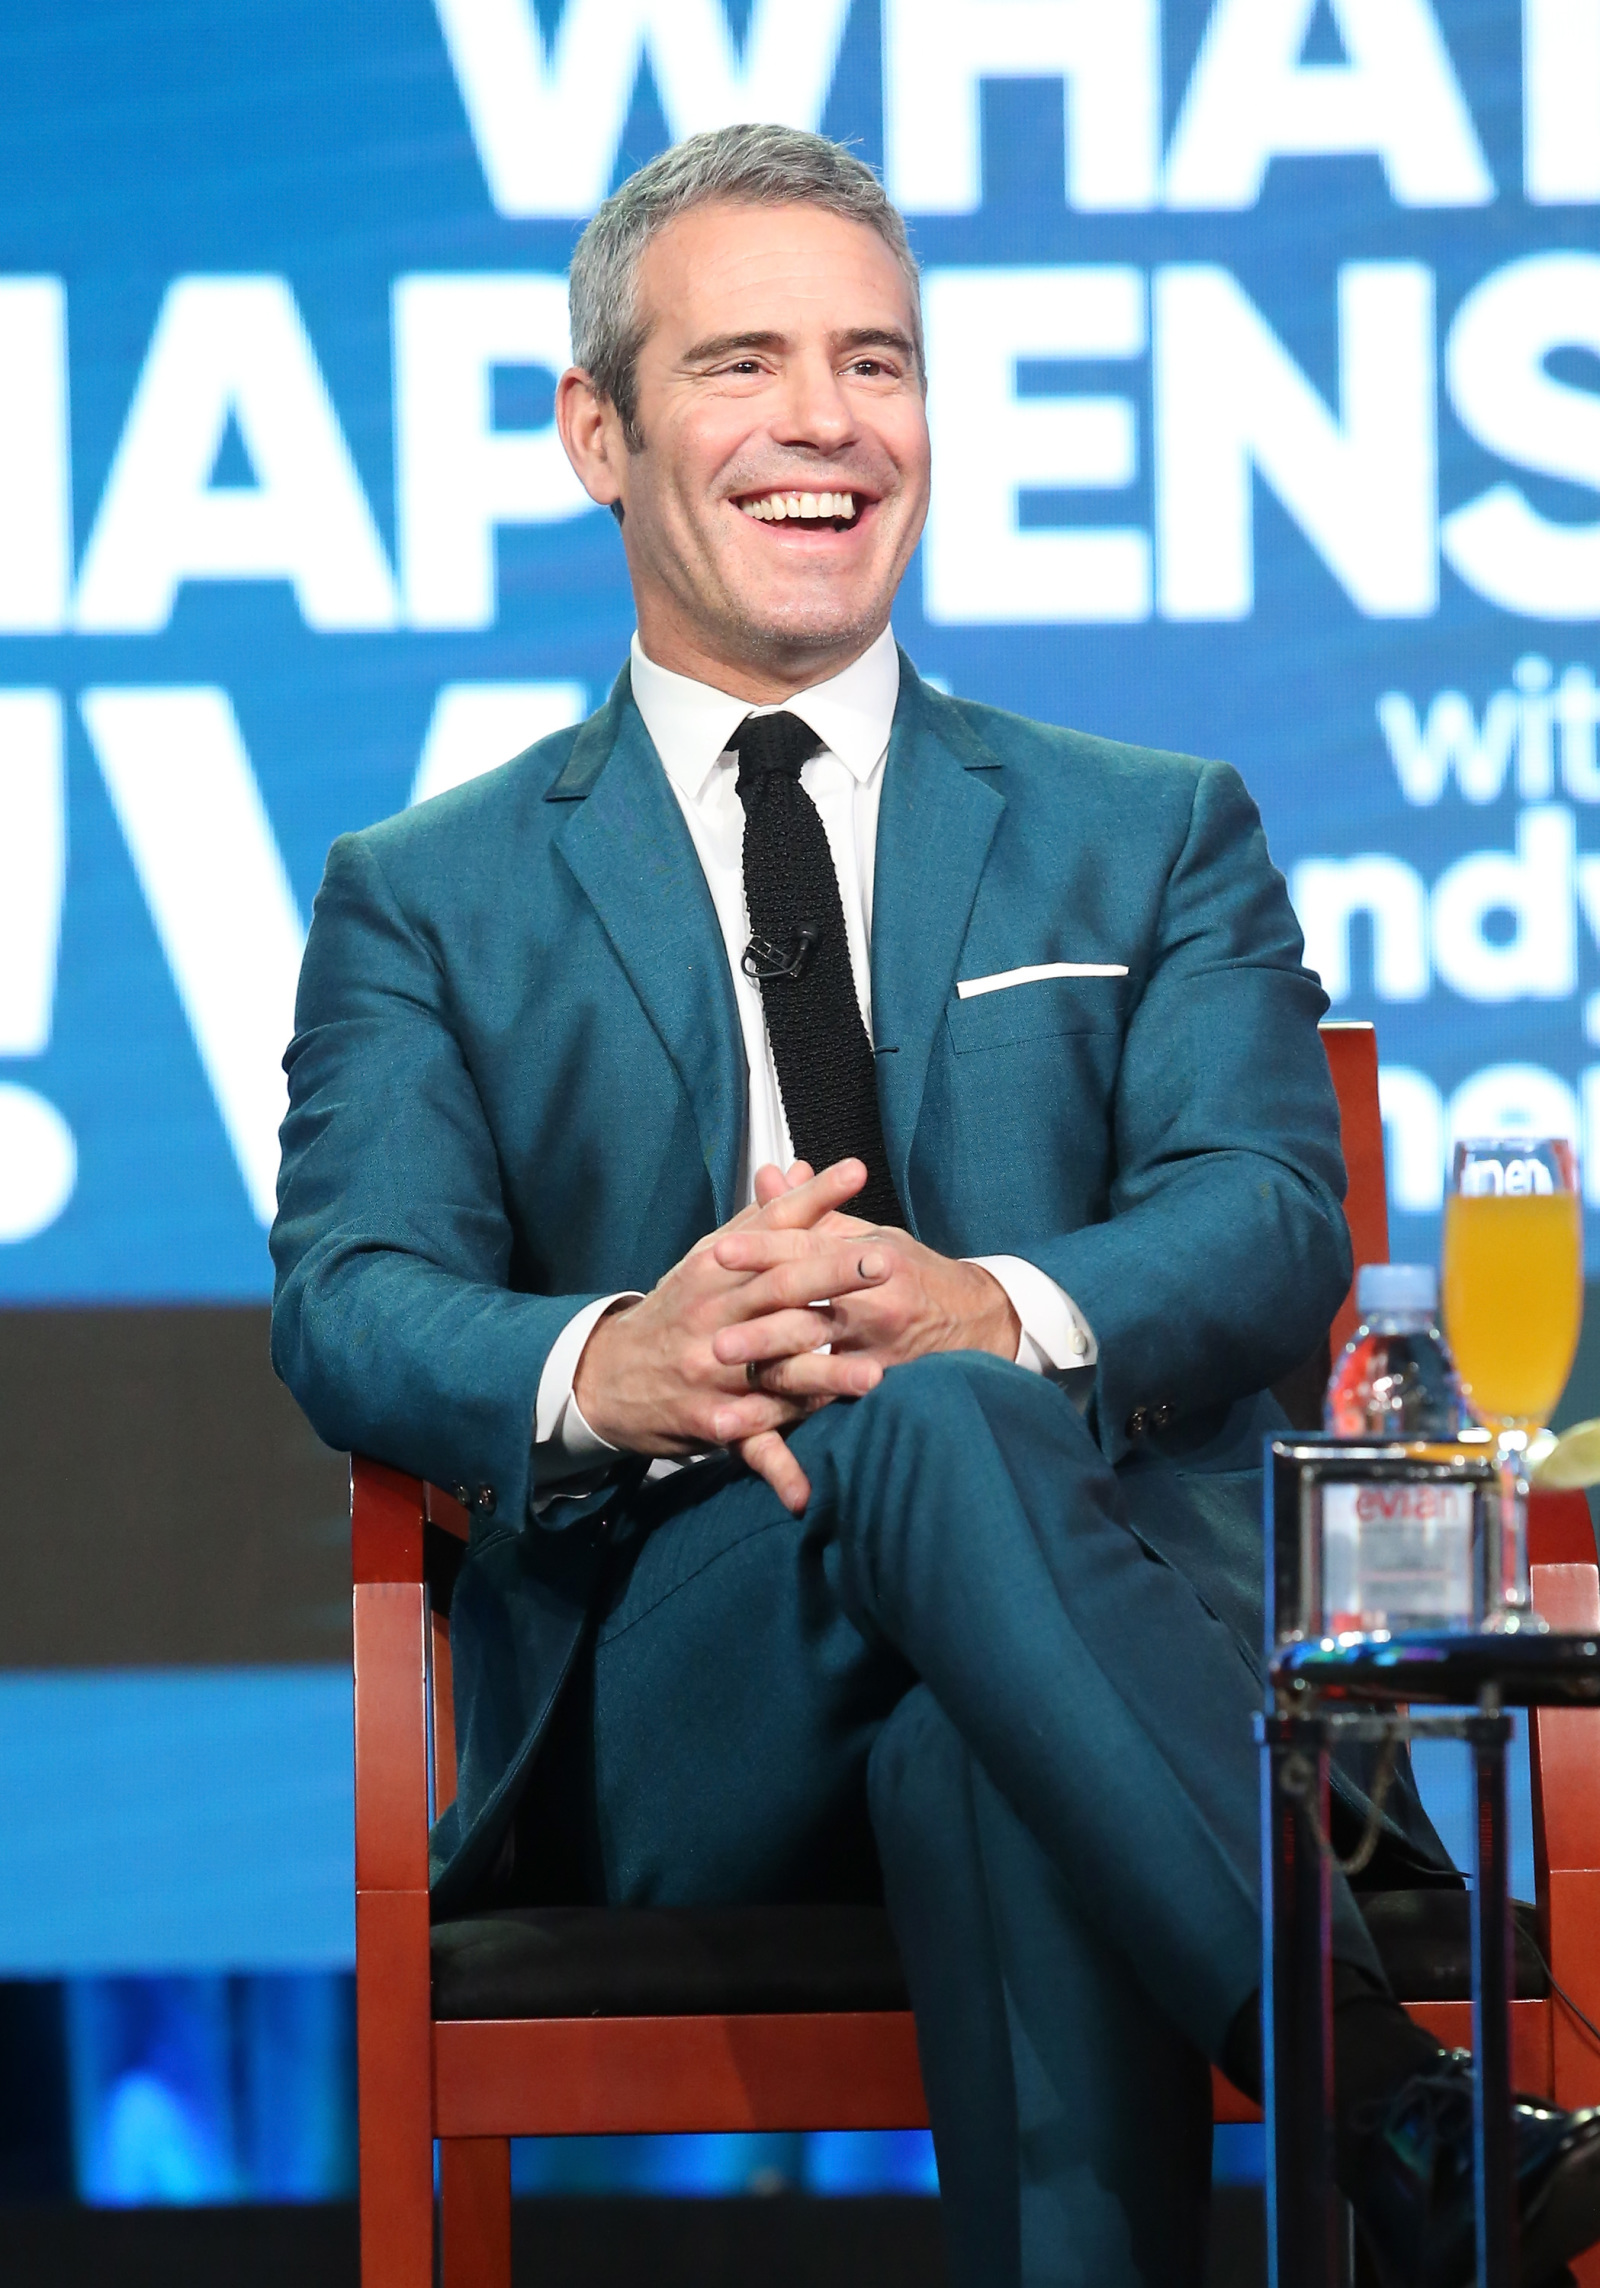 Bravo: Watch What Happens Live with Andy Cohen @ Home is back!